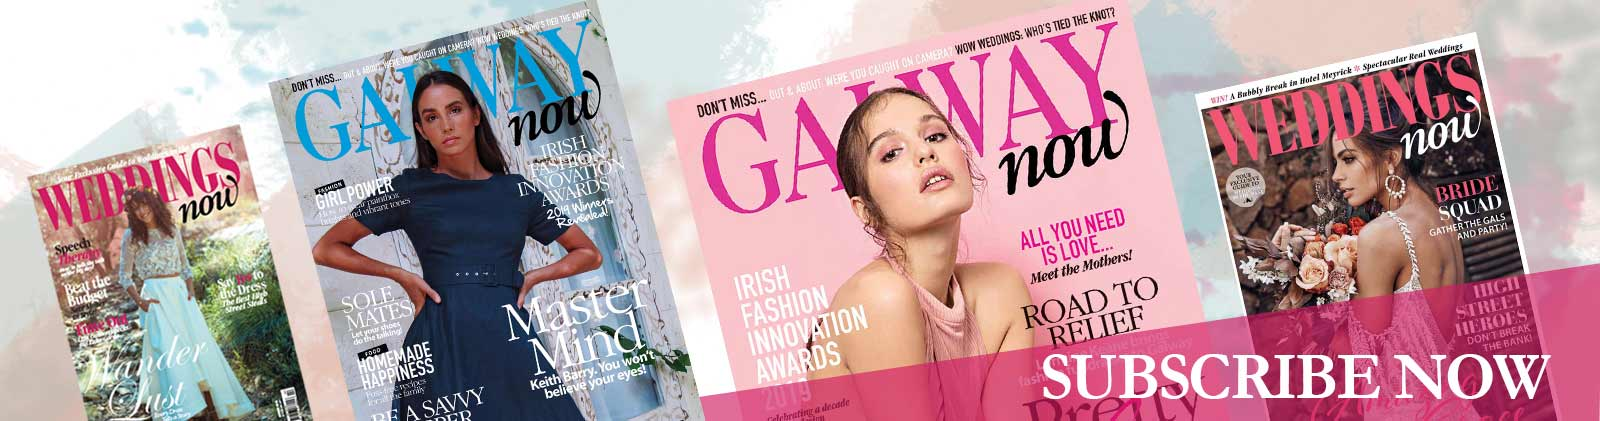 Buy a subscription to Galway now Magazine